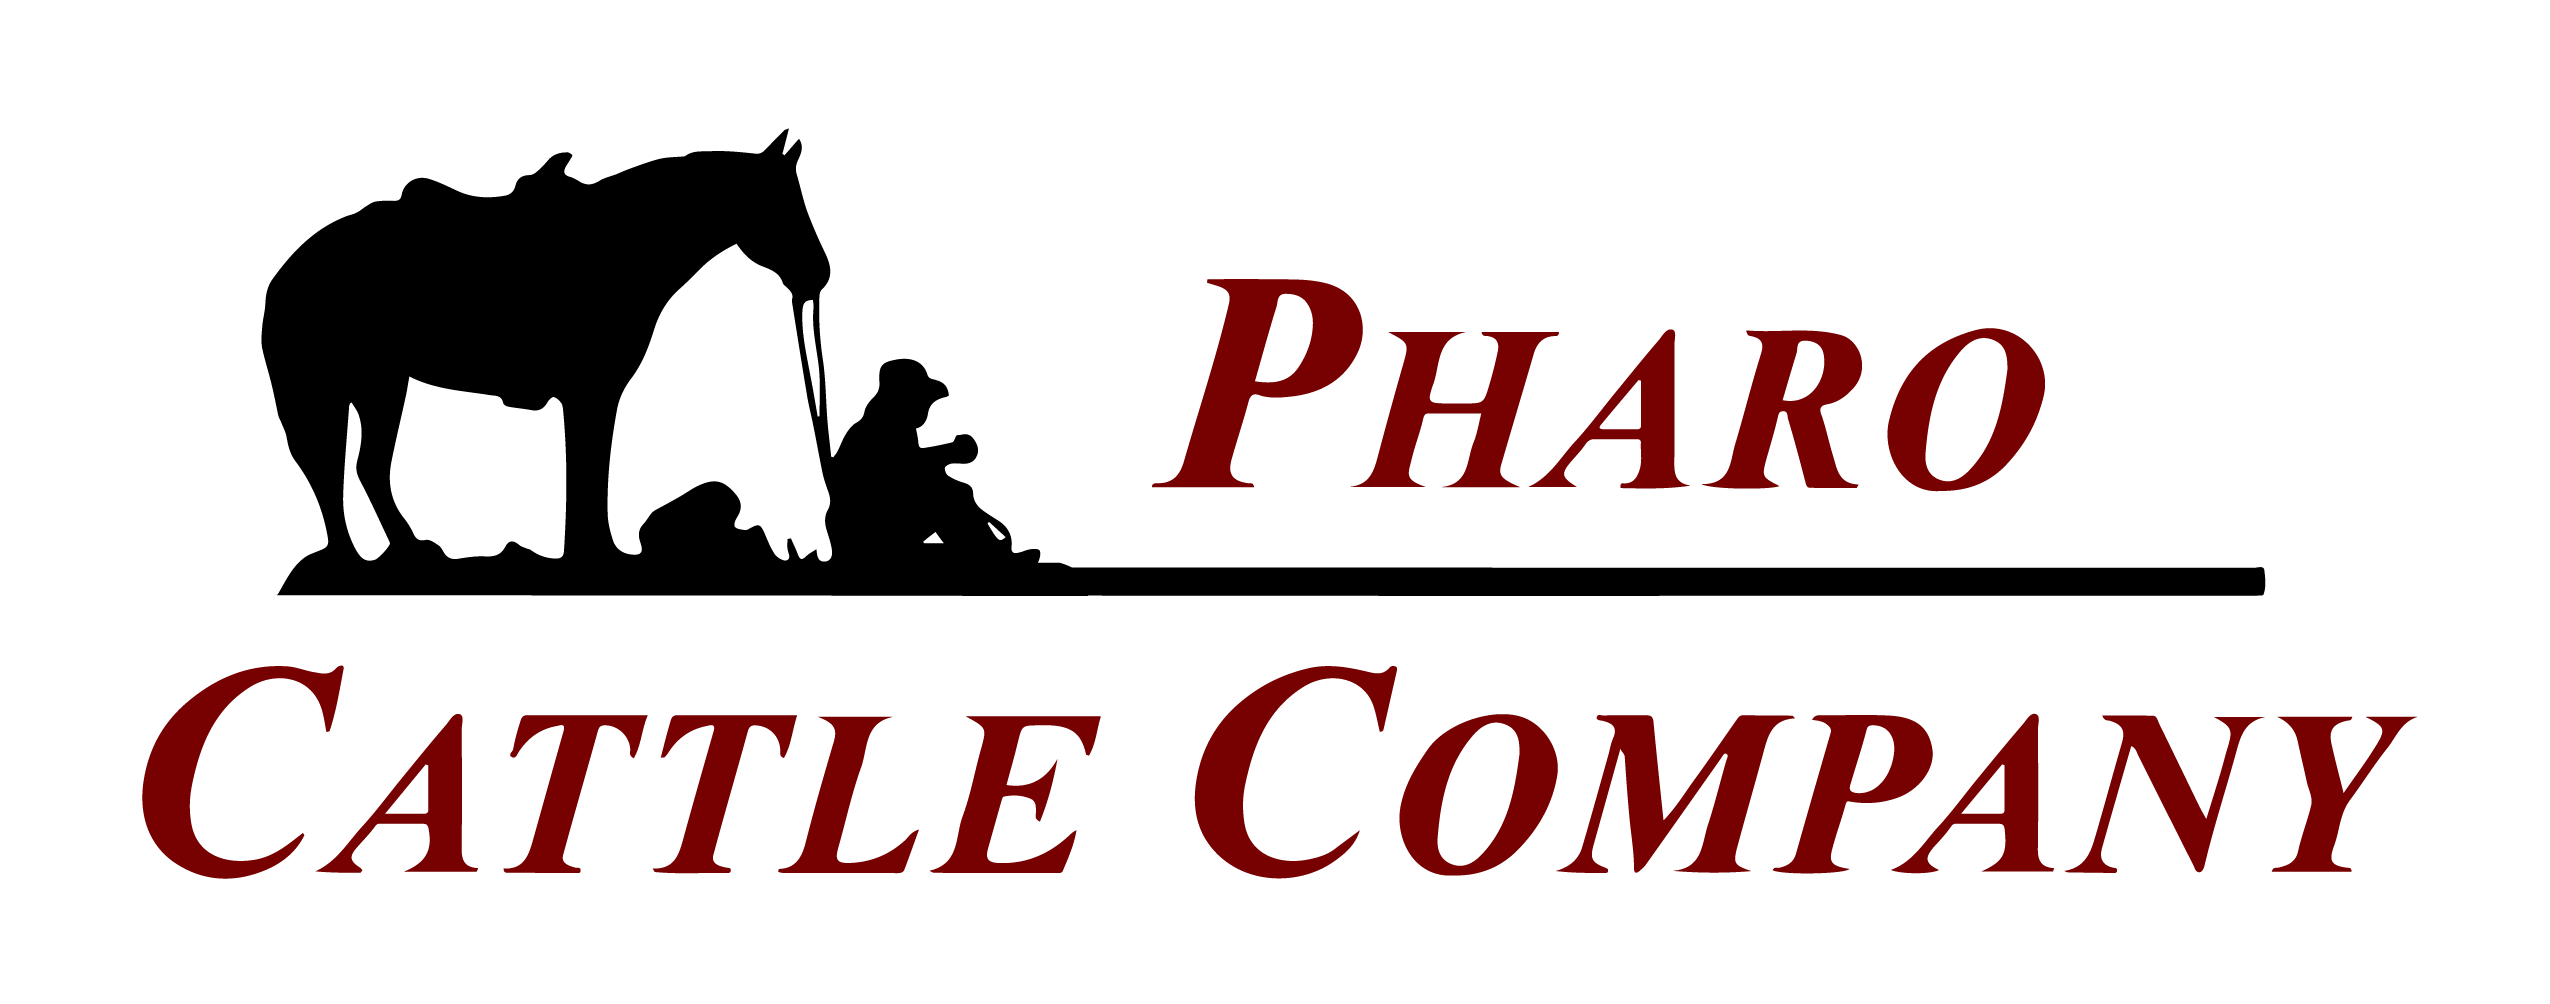 Pharo Cattle Company